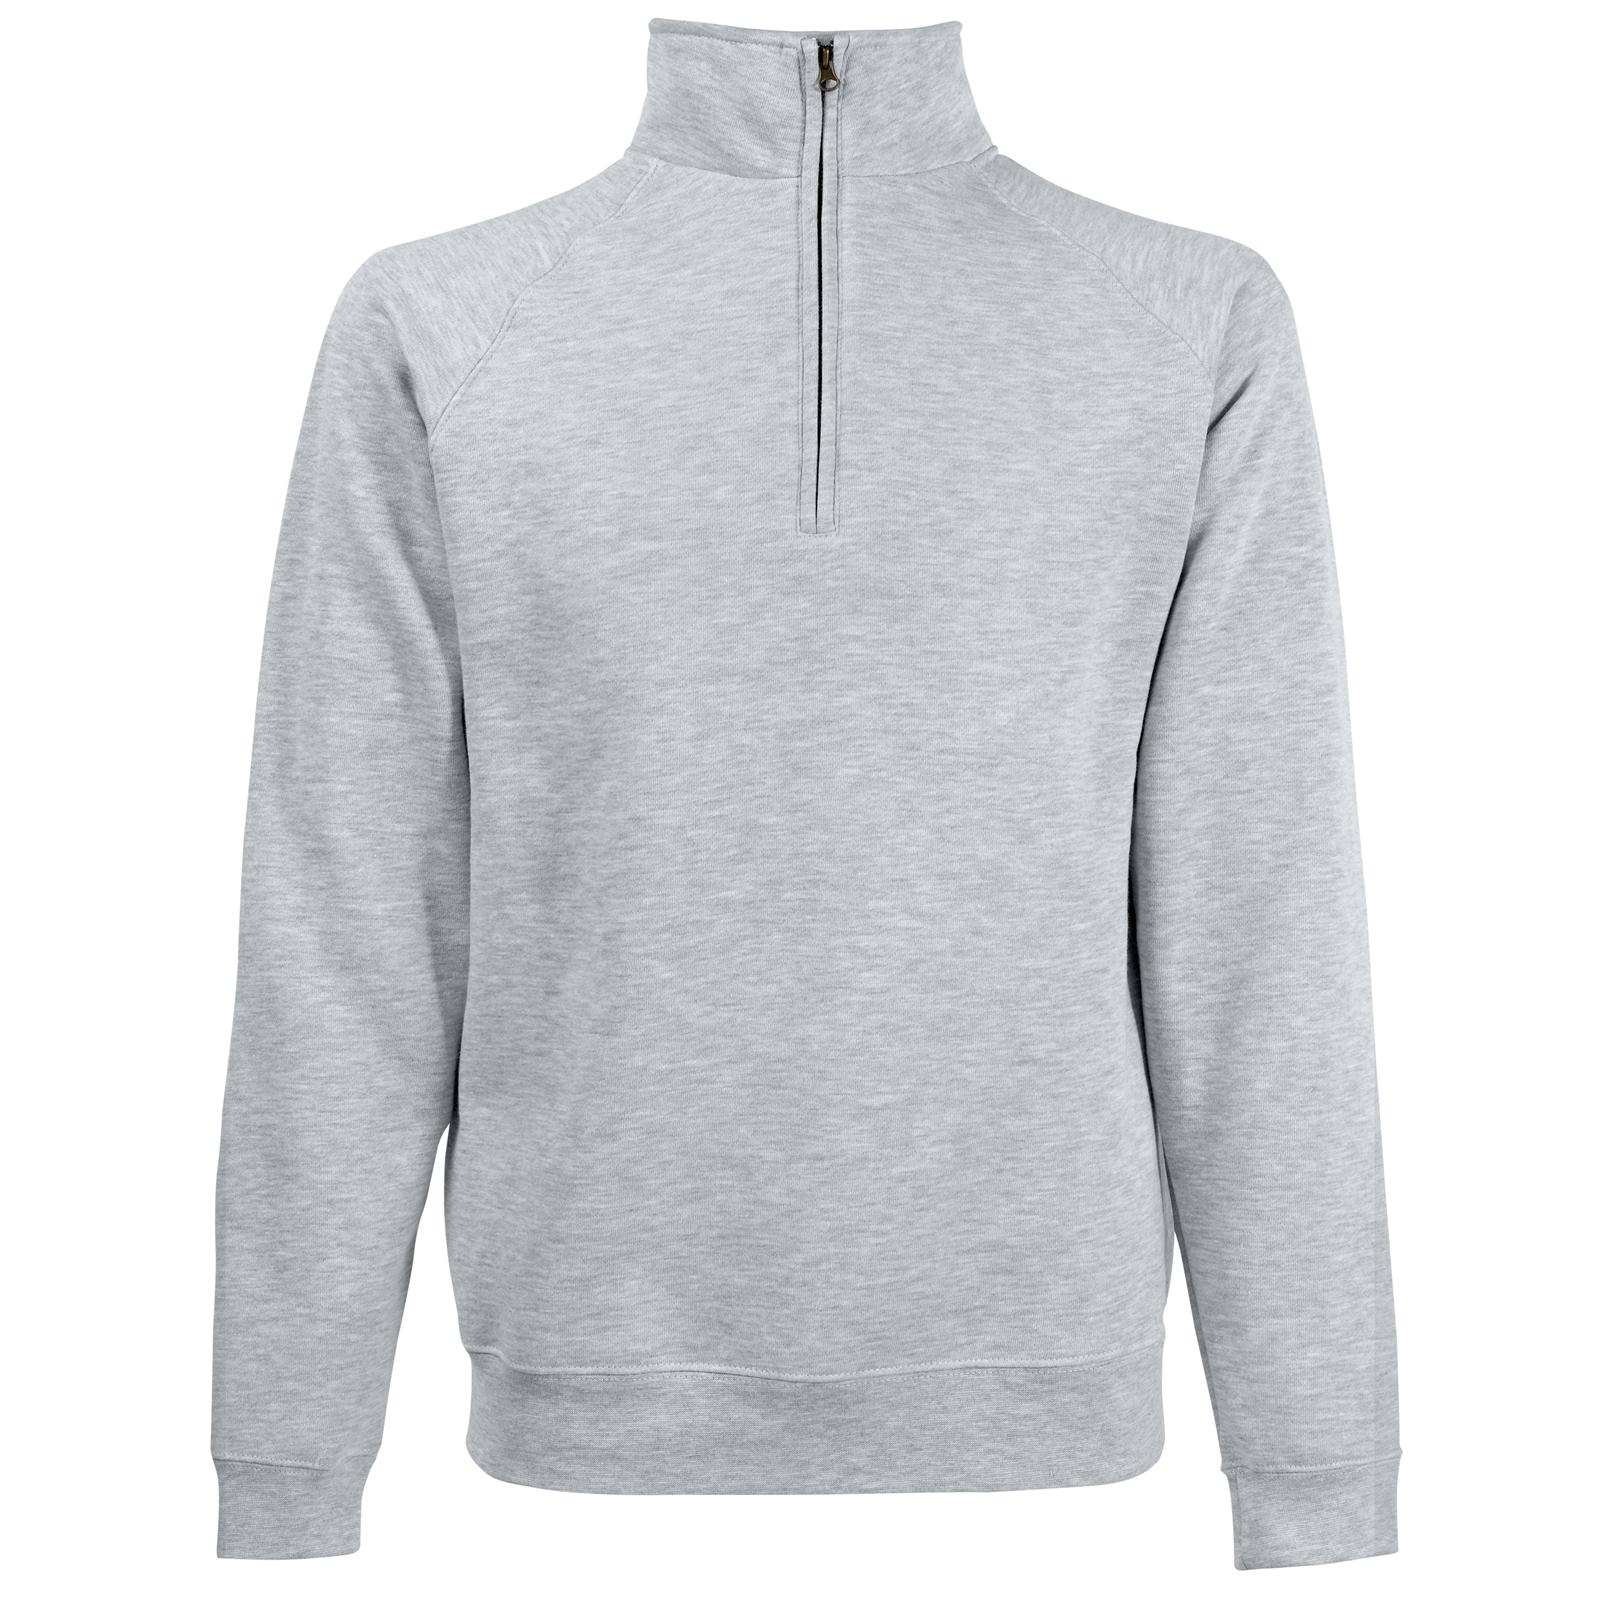 New Fruit of the Loom Mens 1/2 Half Zip Neck Sweatshirt in 7 ...